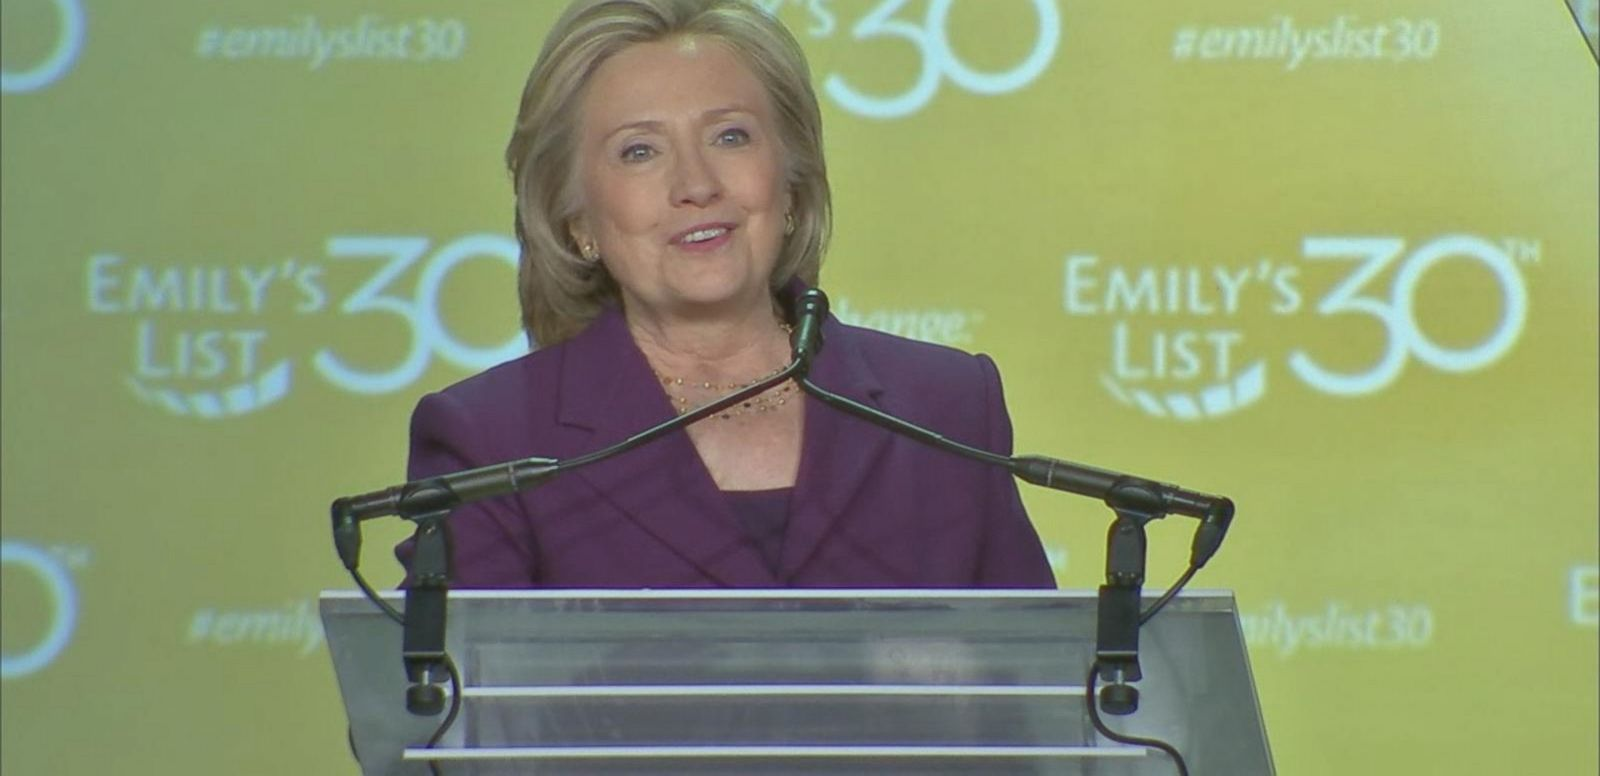 VIDEO: Hillary Clinton Doesn't Comment on Email Controversy